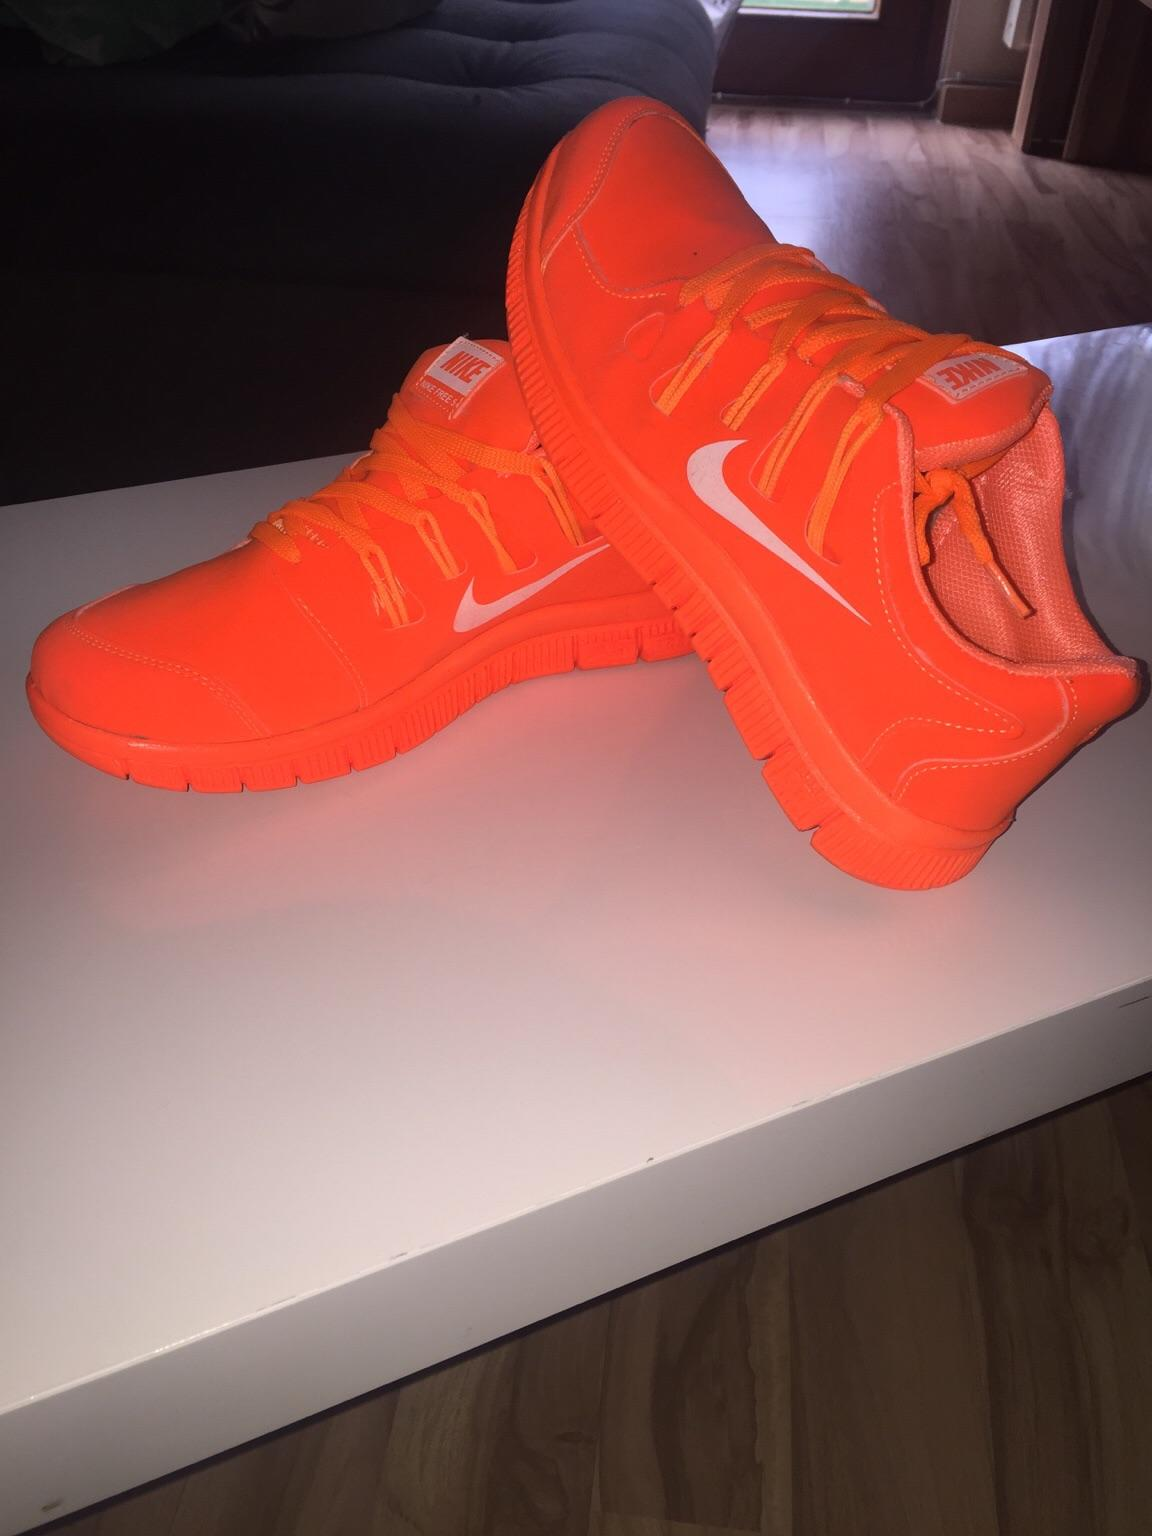 best website 0f5b0 3a001 Orange Shpock Nike Neon Sale Schuhe Koblenz €45 For In 56073 ...